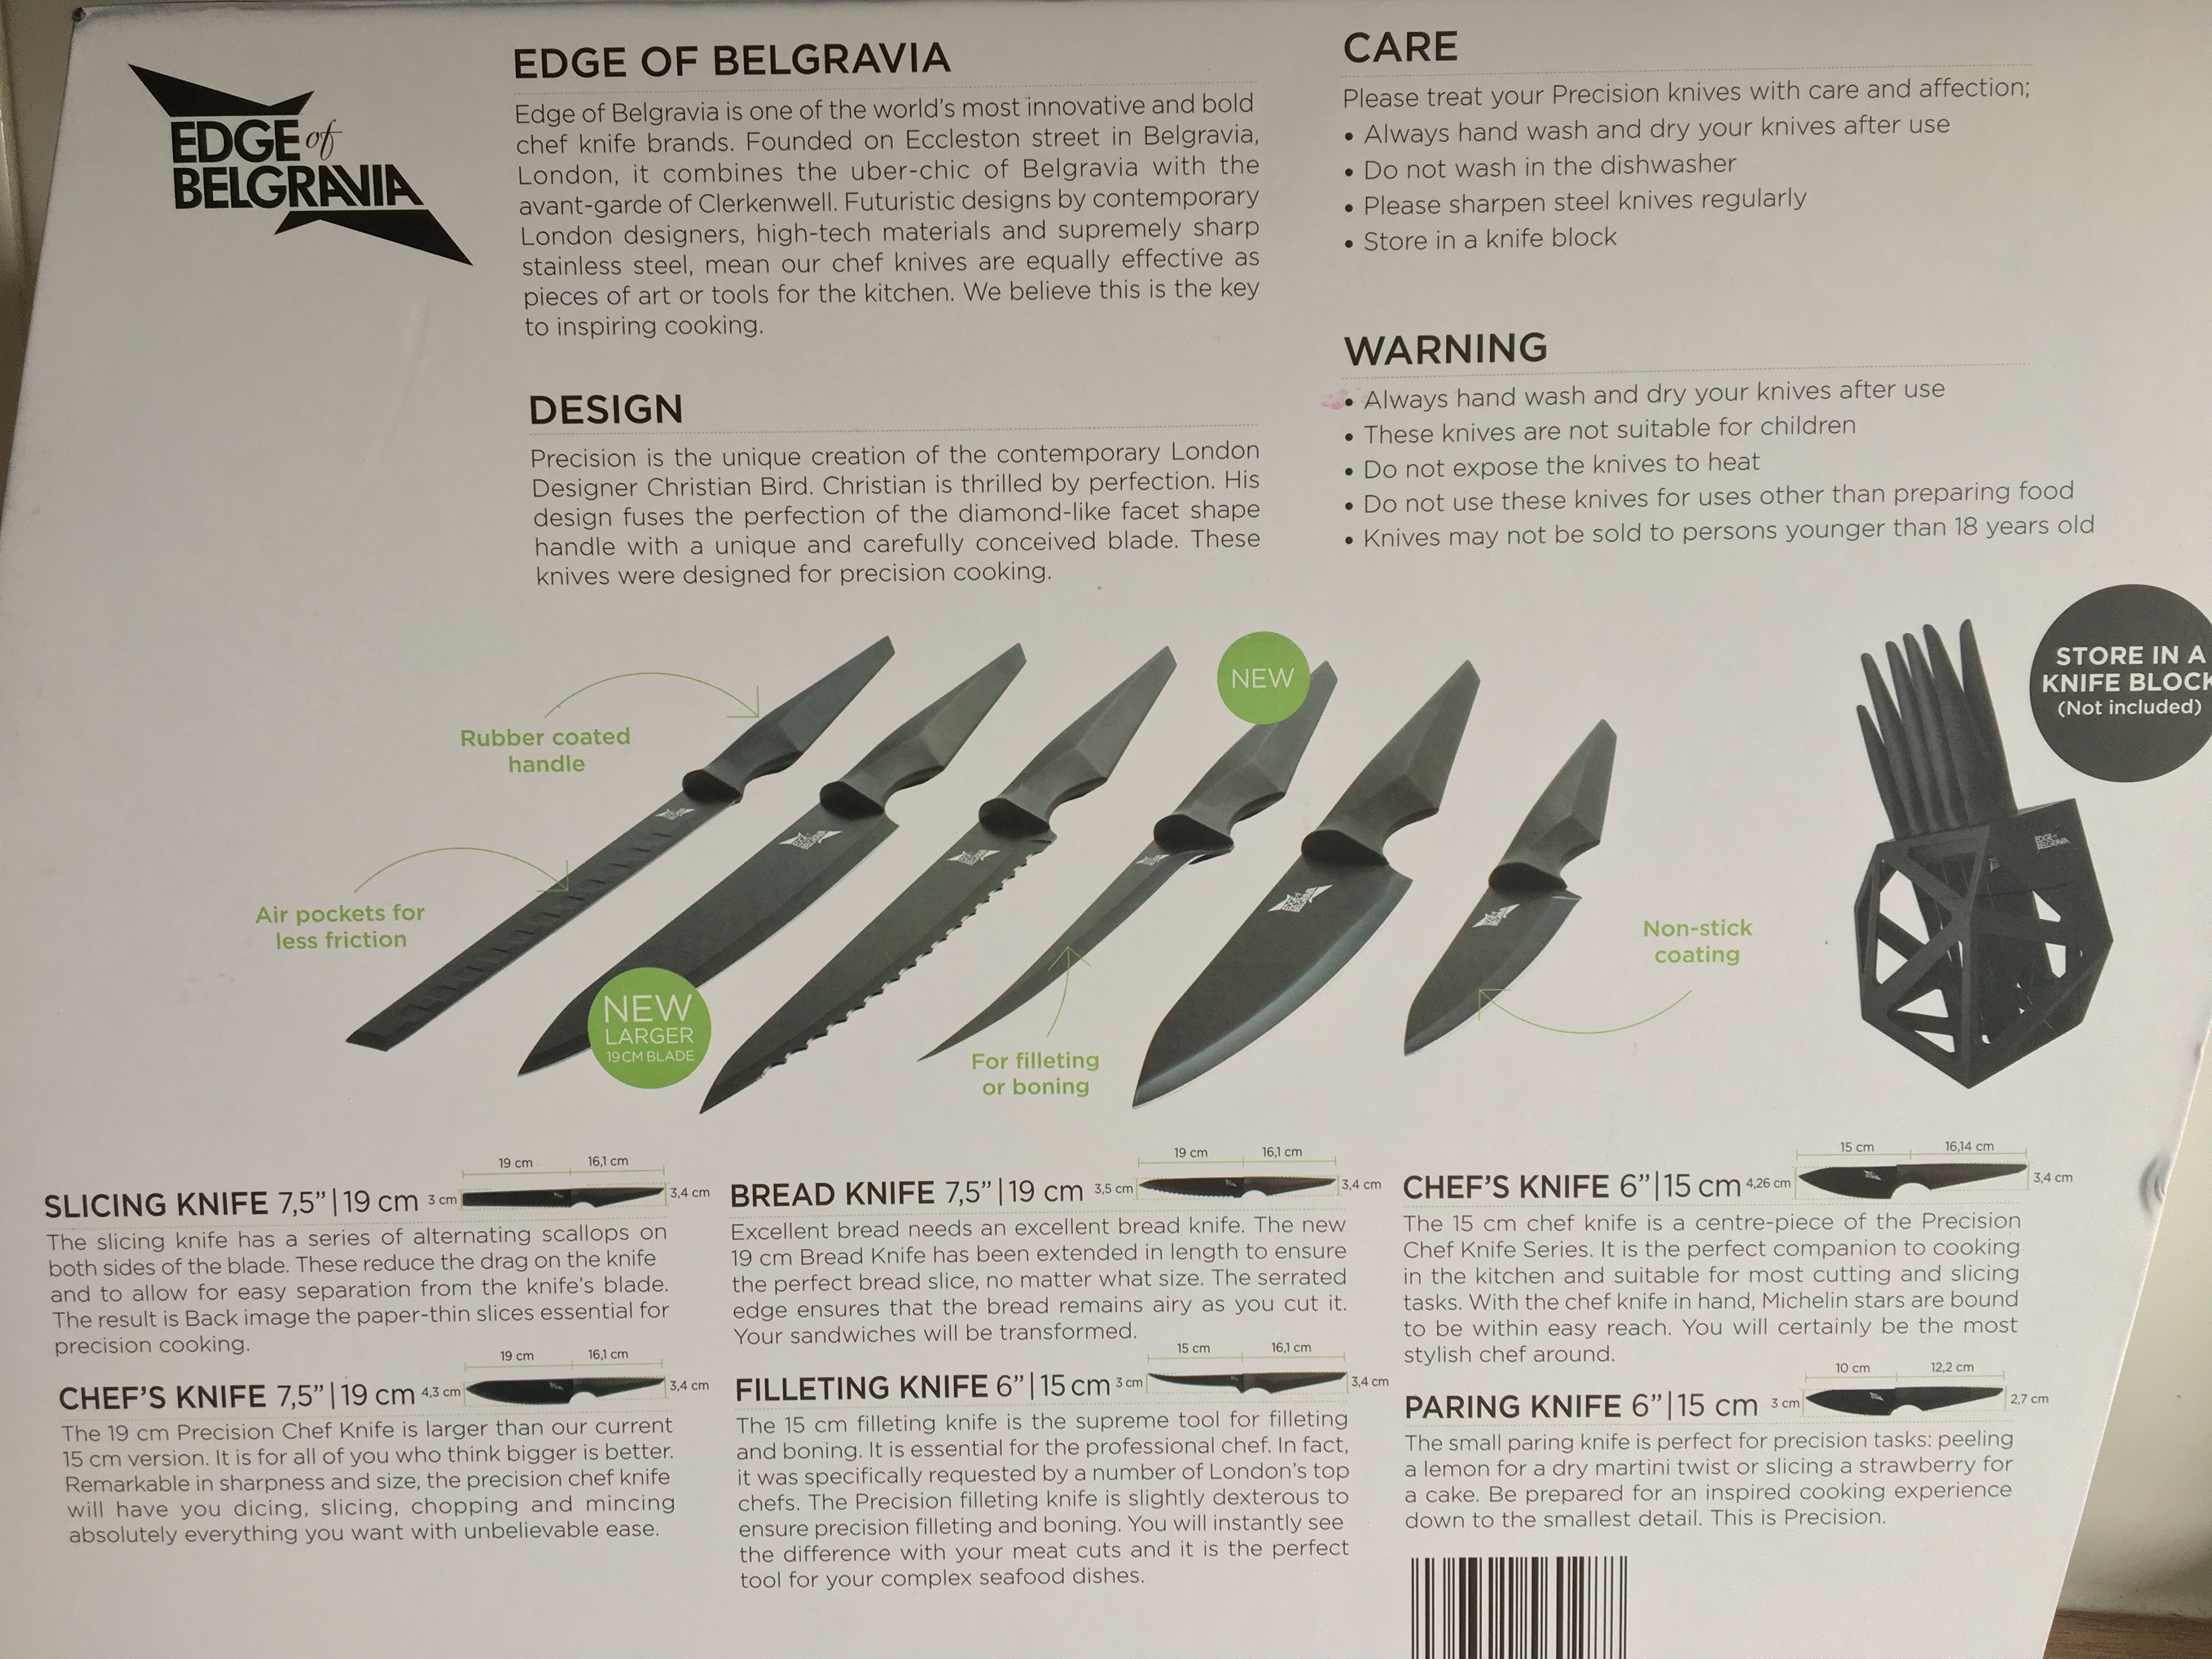 edge of belgravia precision chef knife series competition like i mentioned above these have never been used they are brand new in an unopened box and i am still very tempted to keep them so get sharing